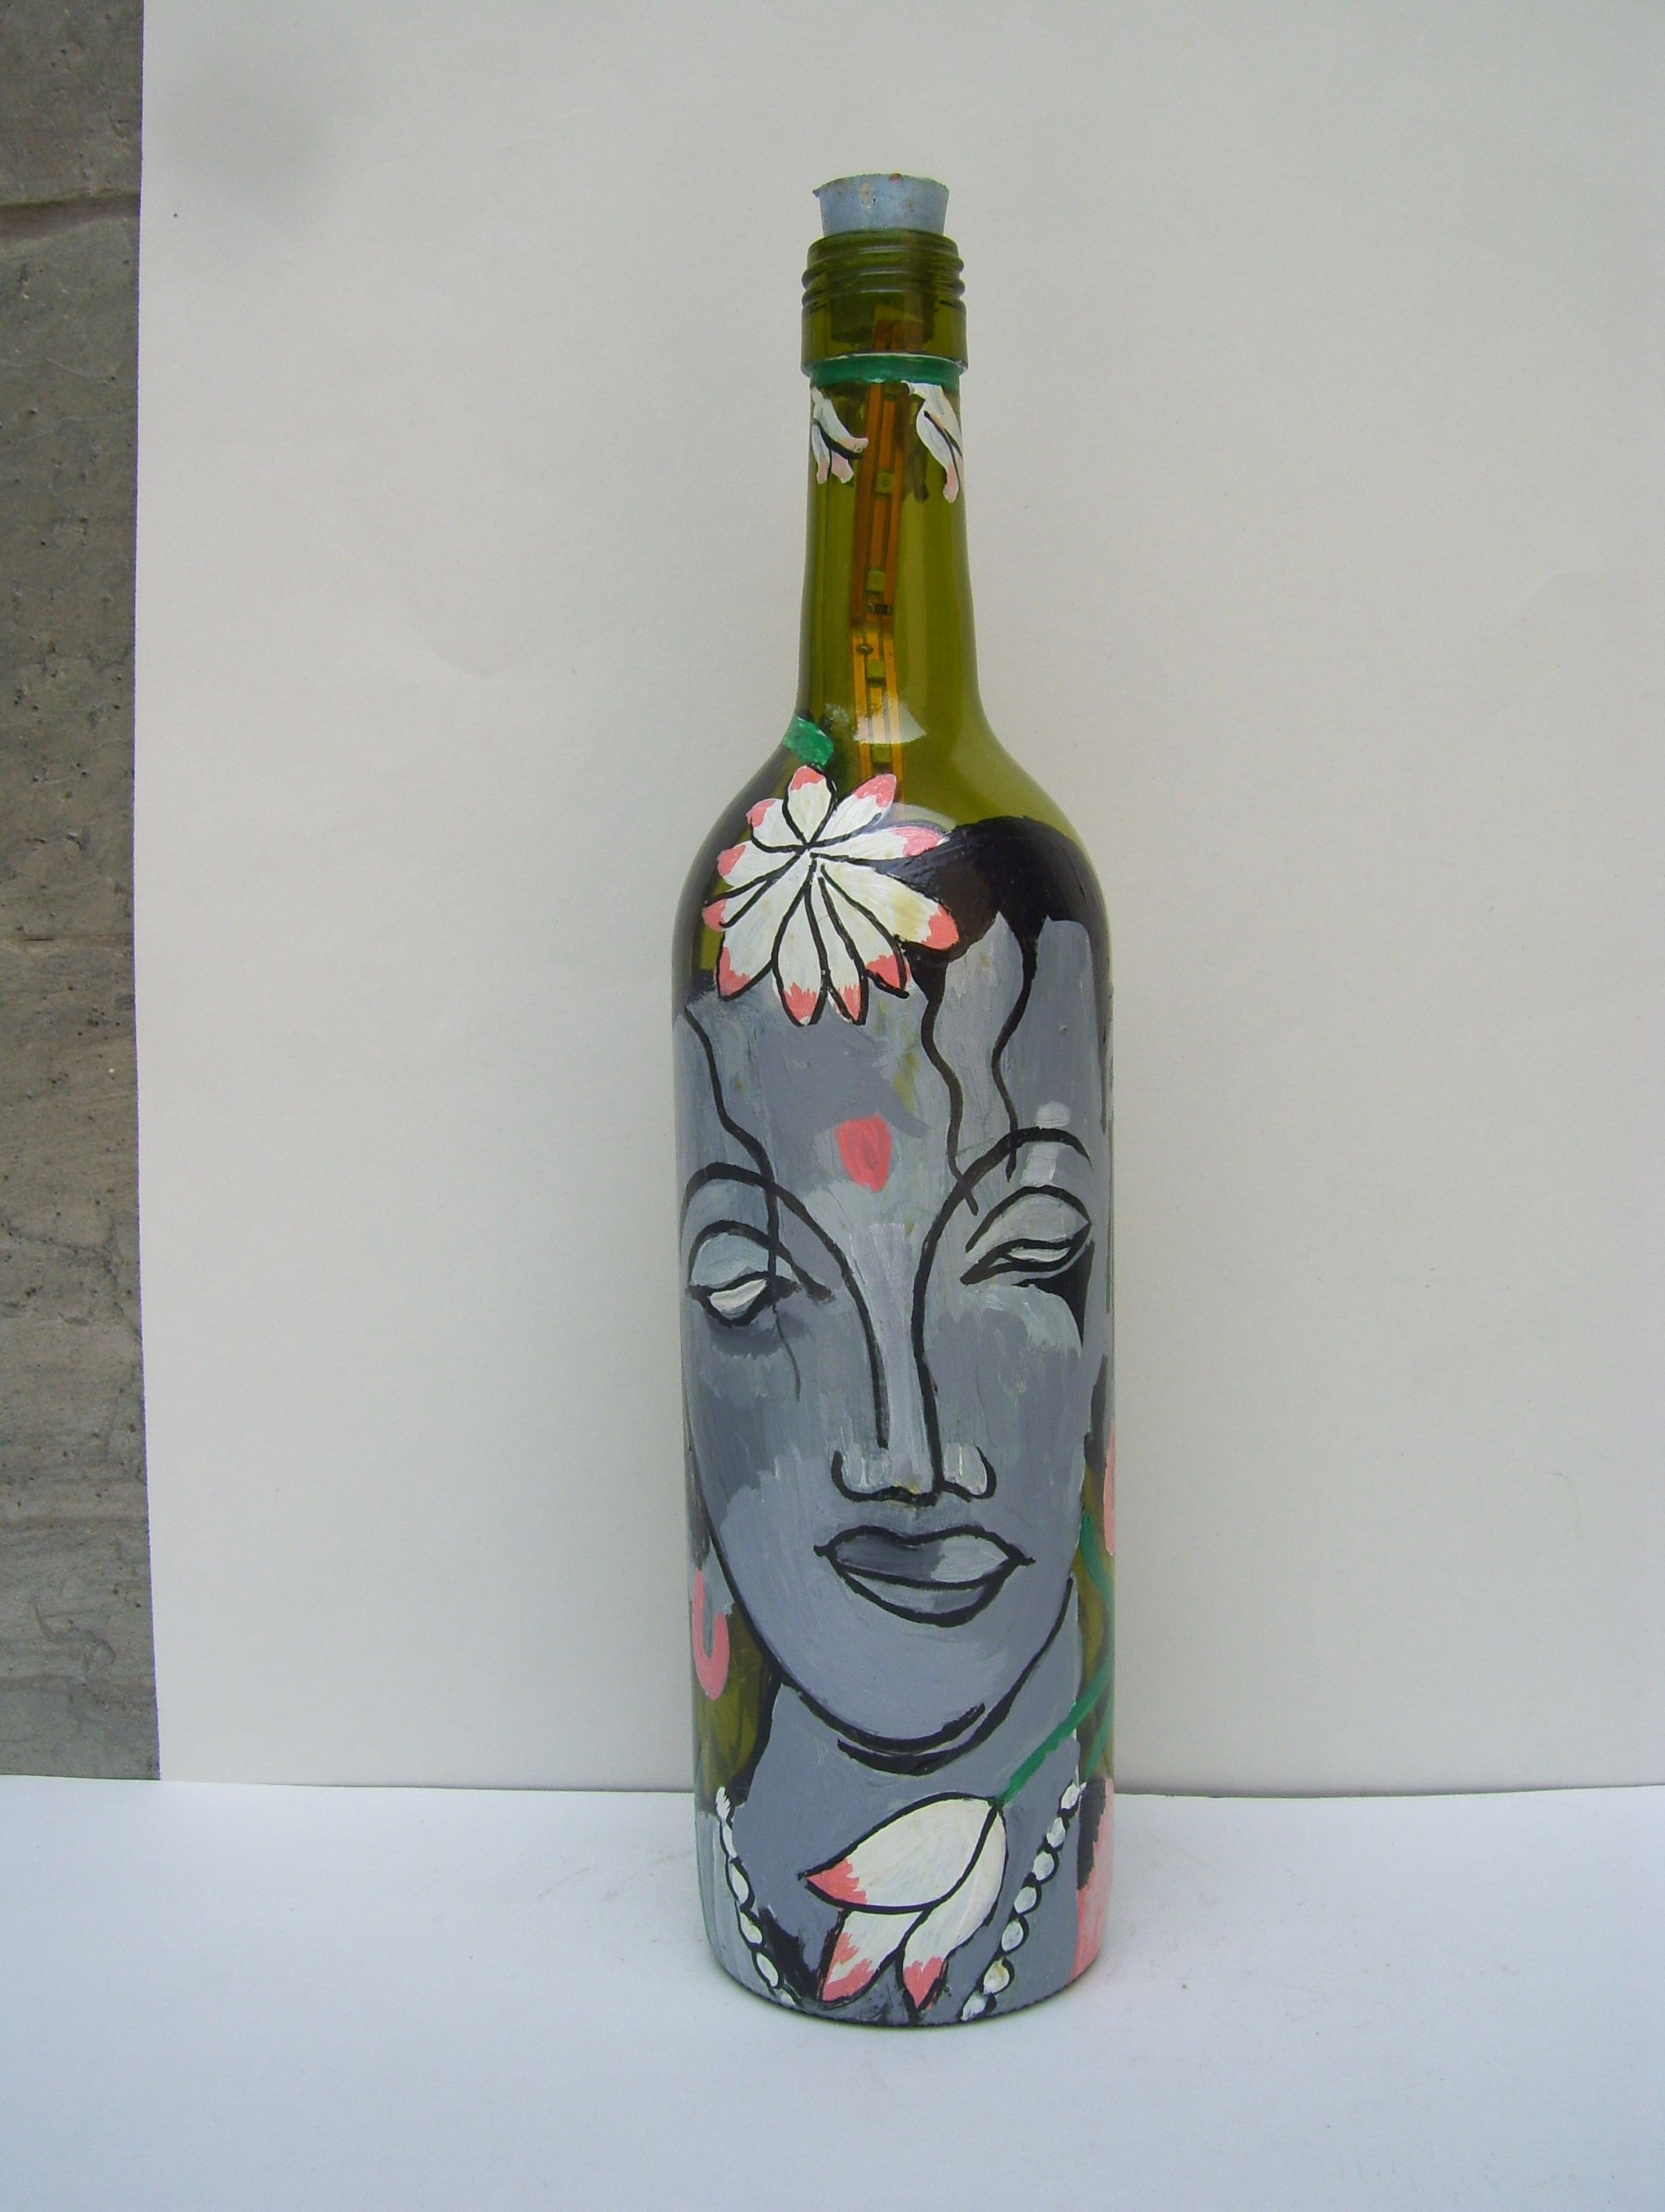 Hand Painted Glass Bottles From Bottles Not Empty